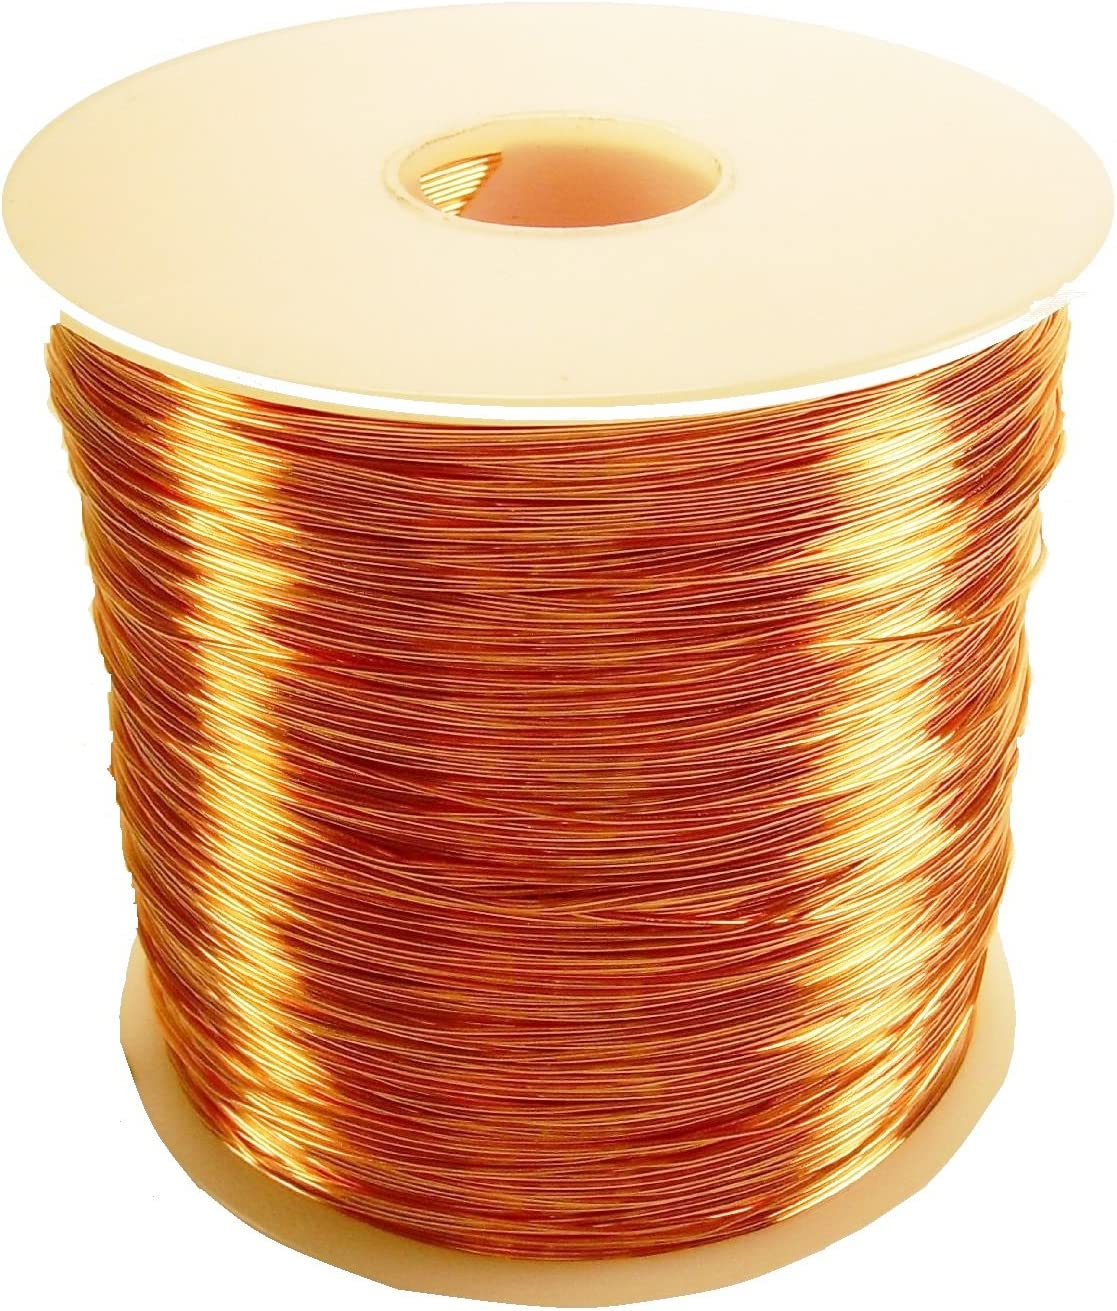 10 Ga // 32 Ft. 10 Ga Copper Wire Dead Soft Spool